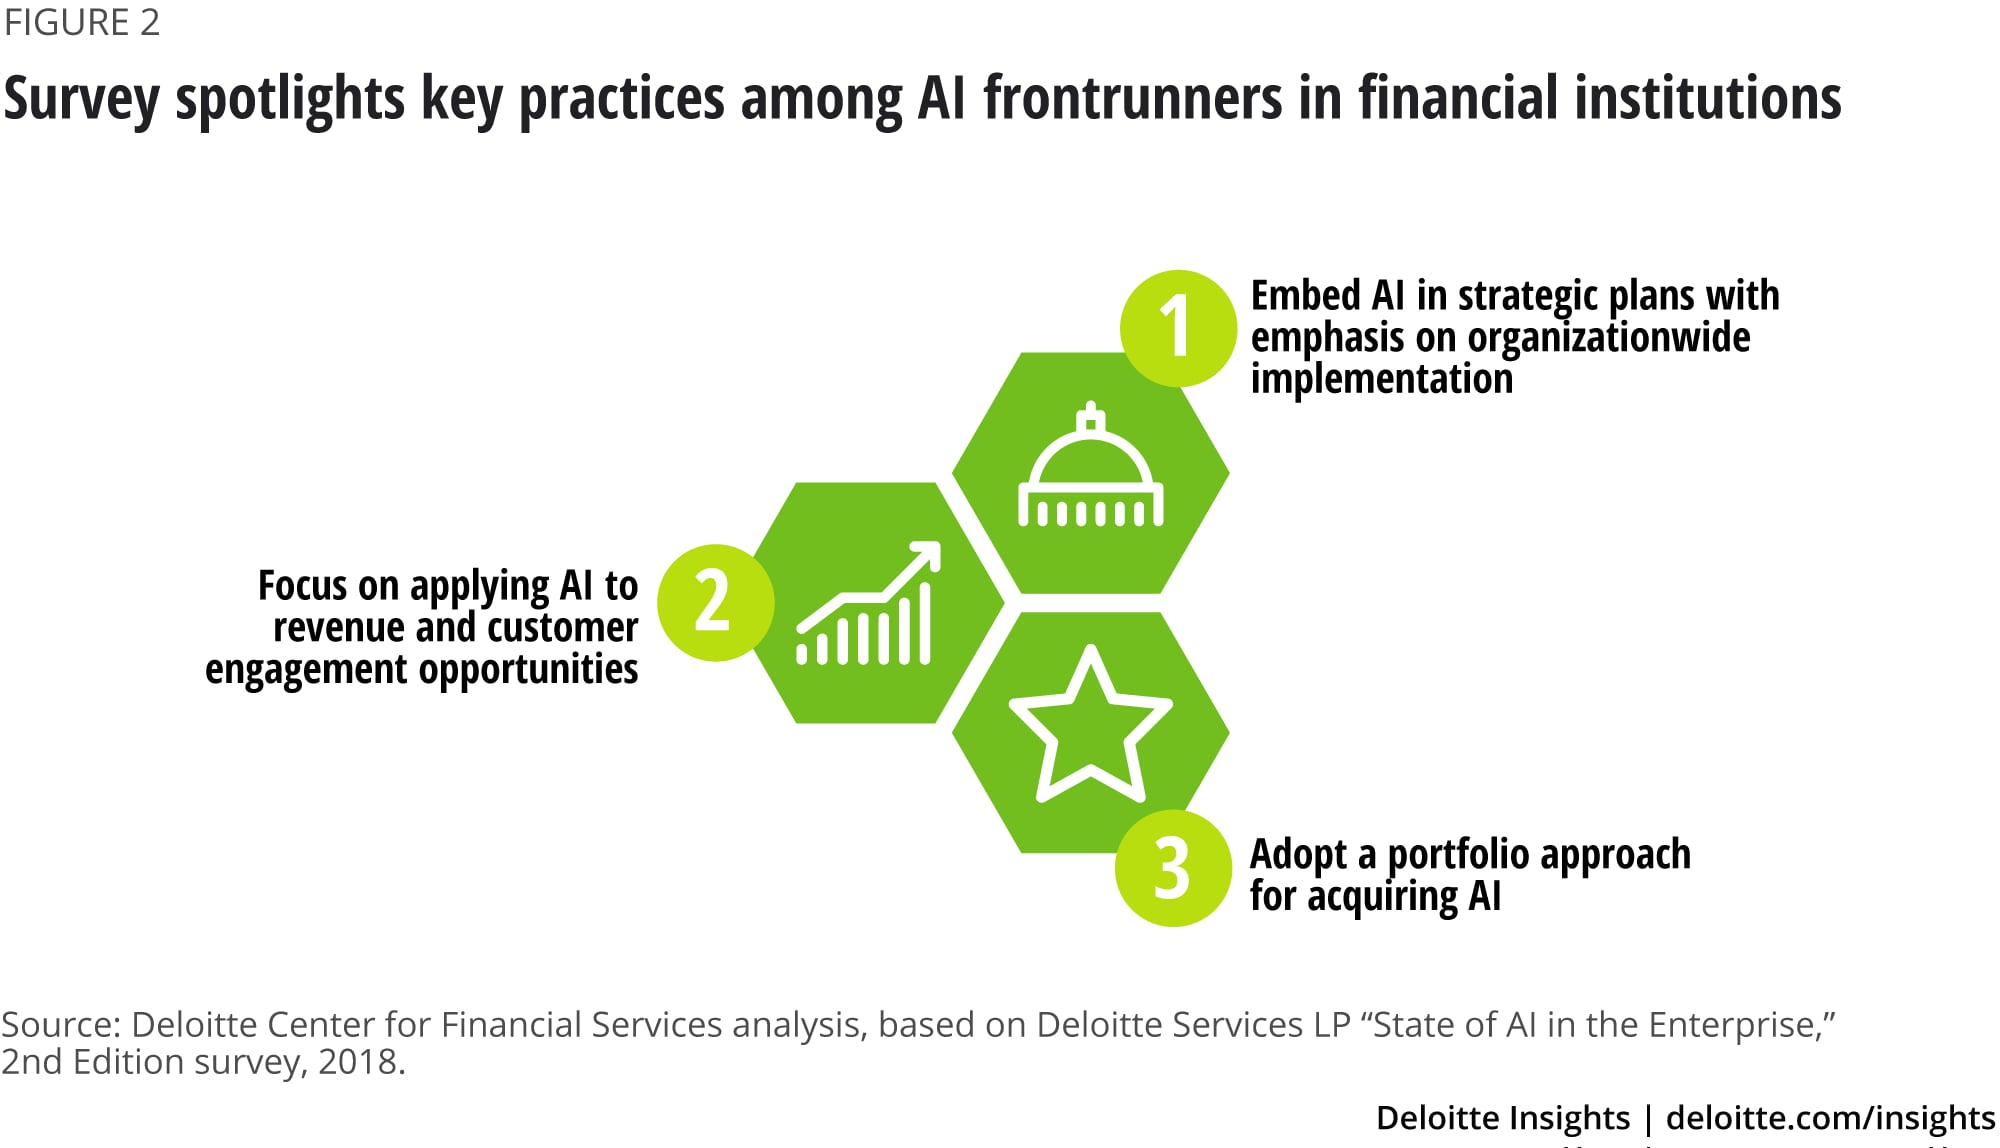 Survey spotlights key practices among AI frontrunners in financial institutions